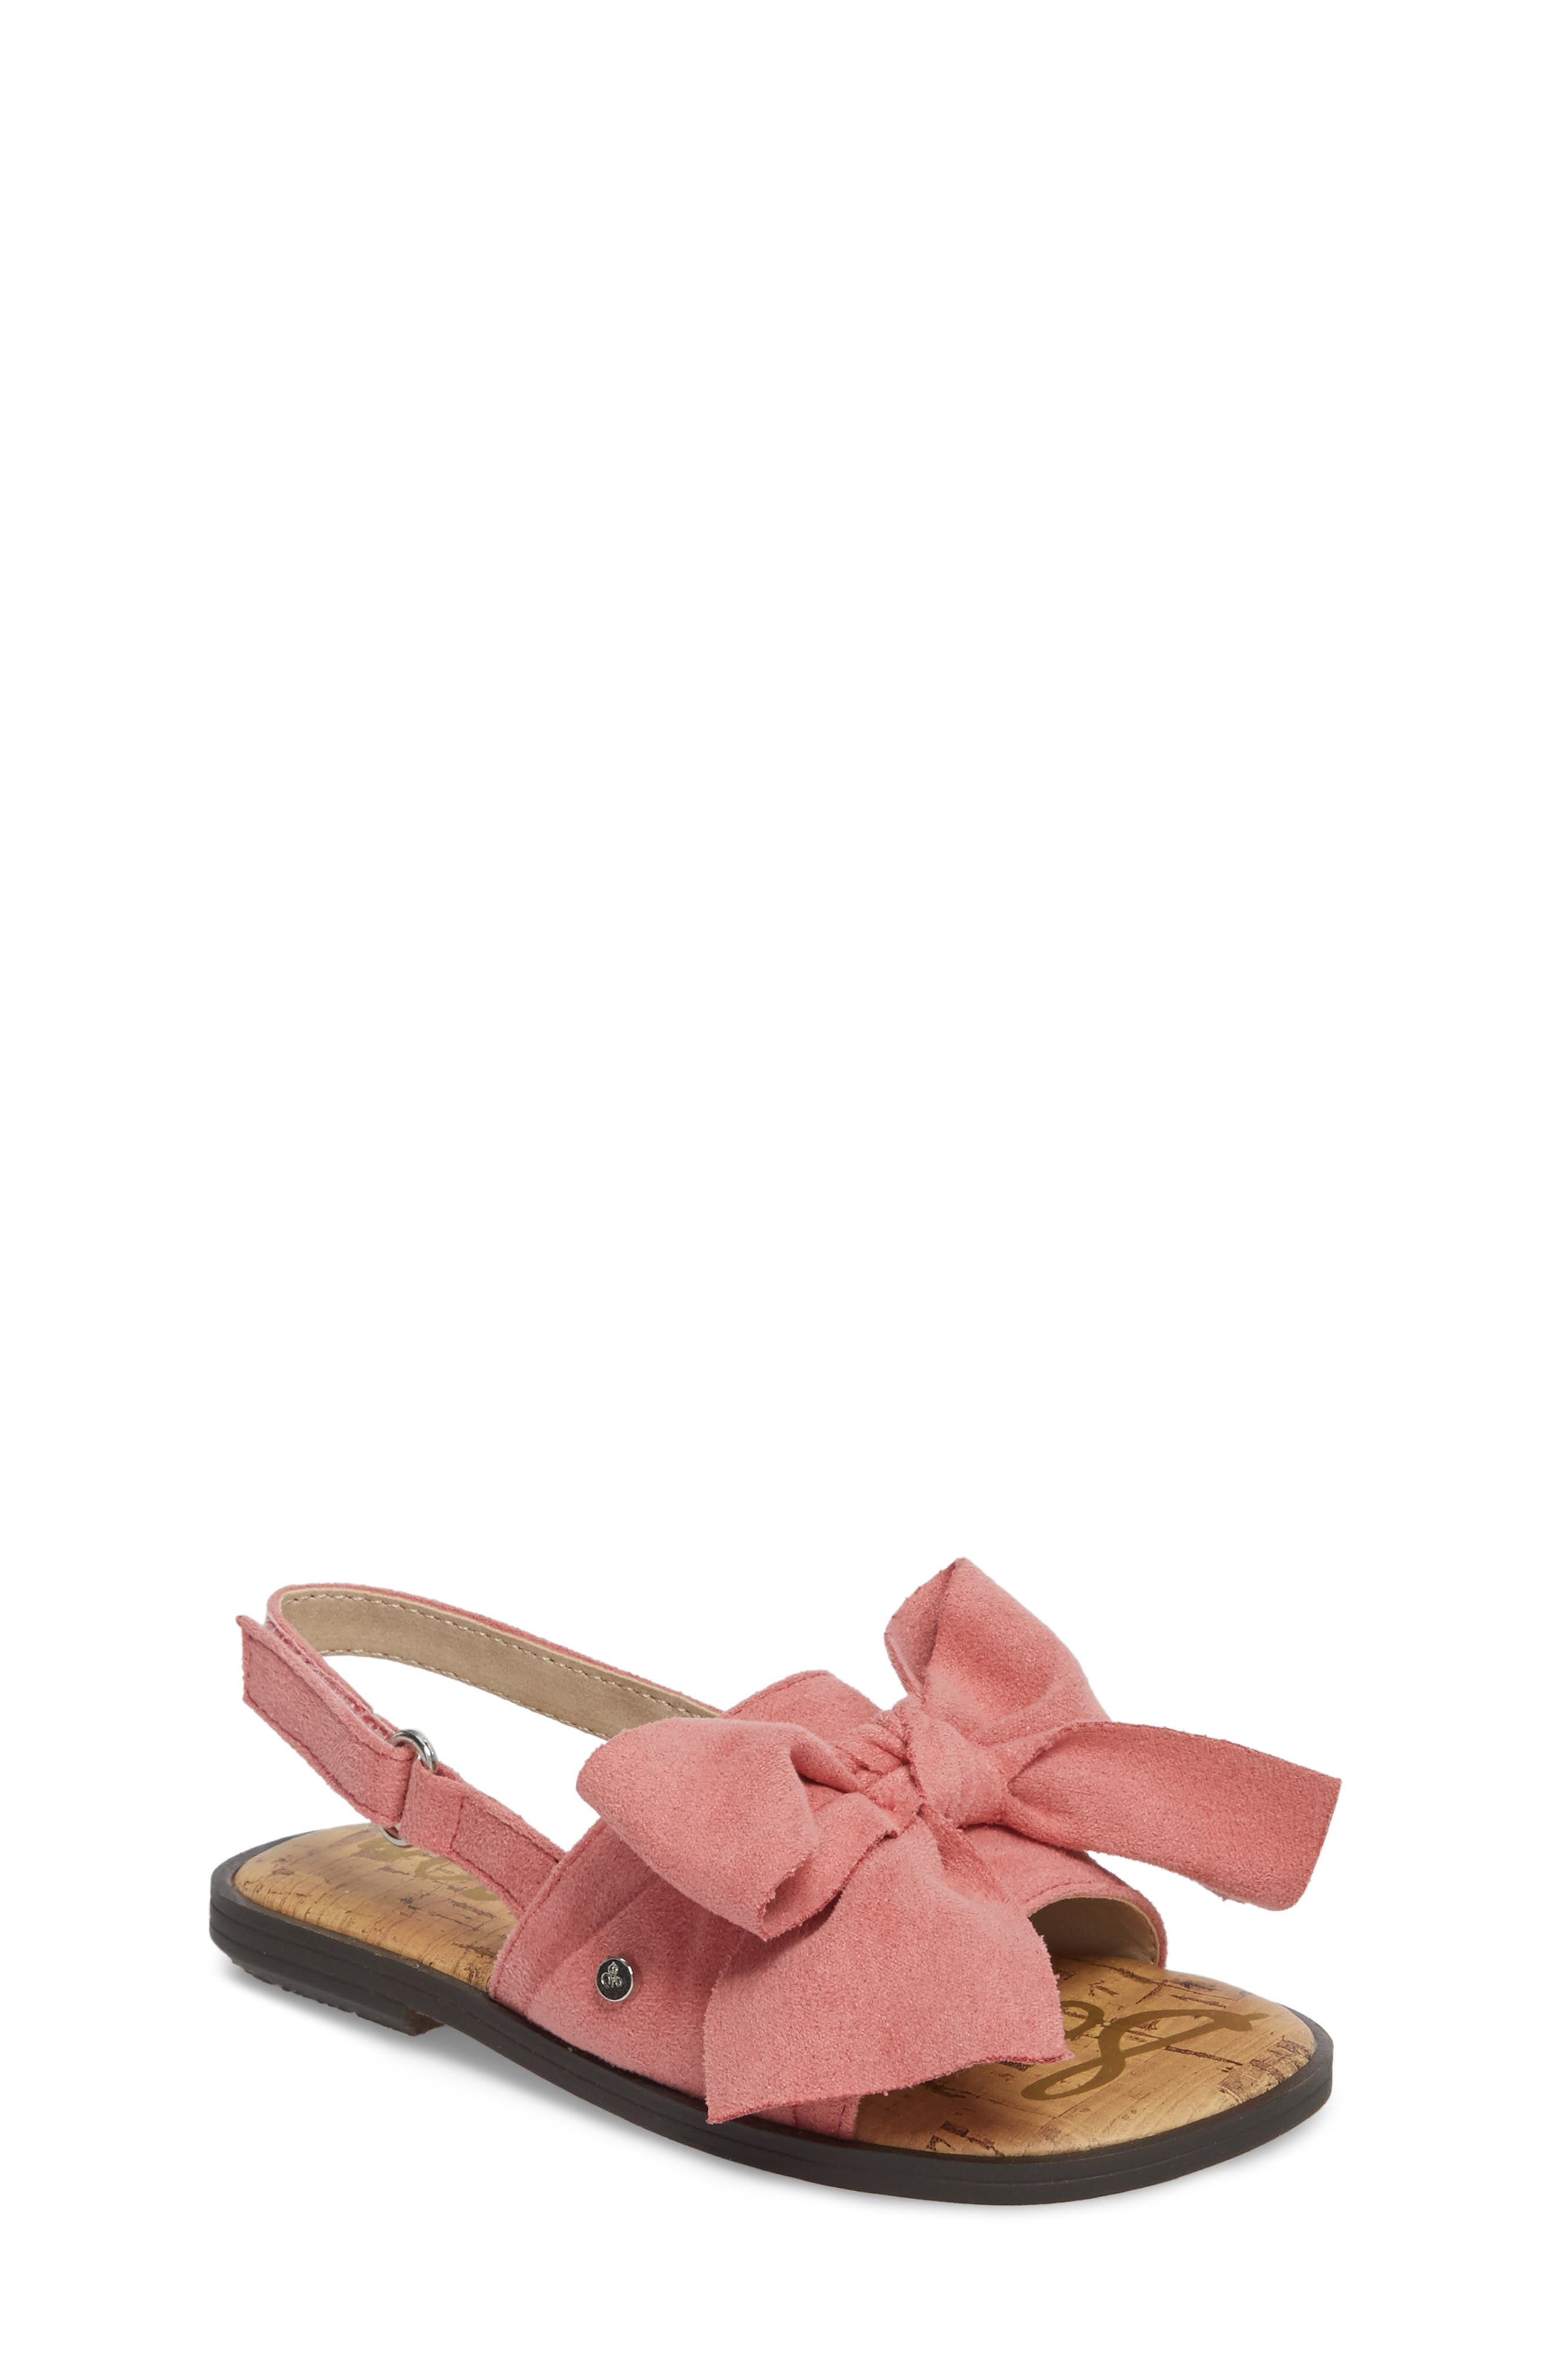 Gigi Bow Sandal,                         Main,                         color, Pink Faux Suede